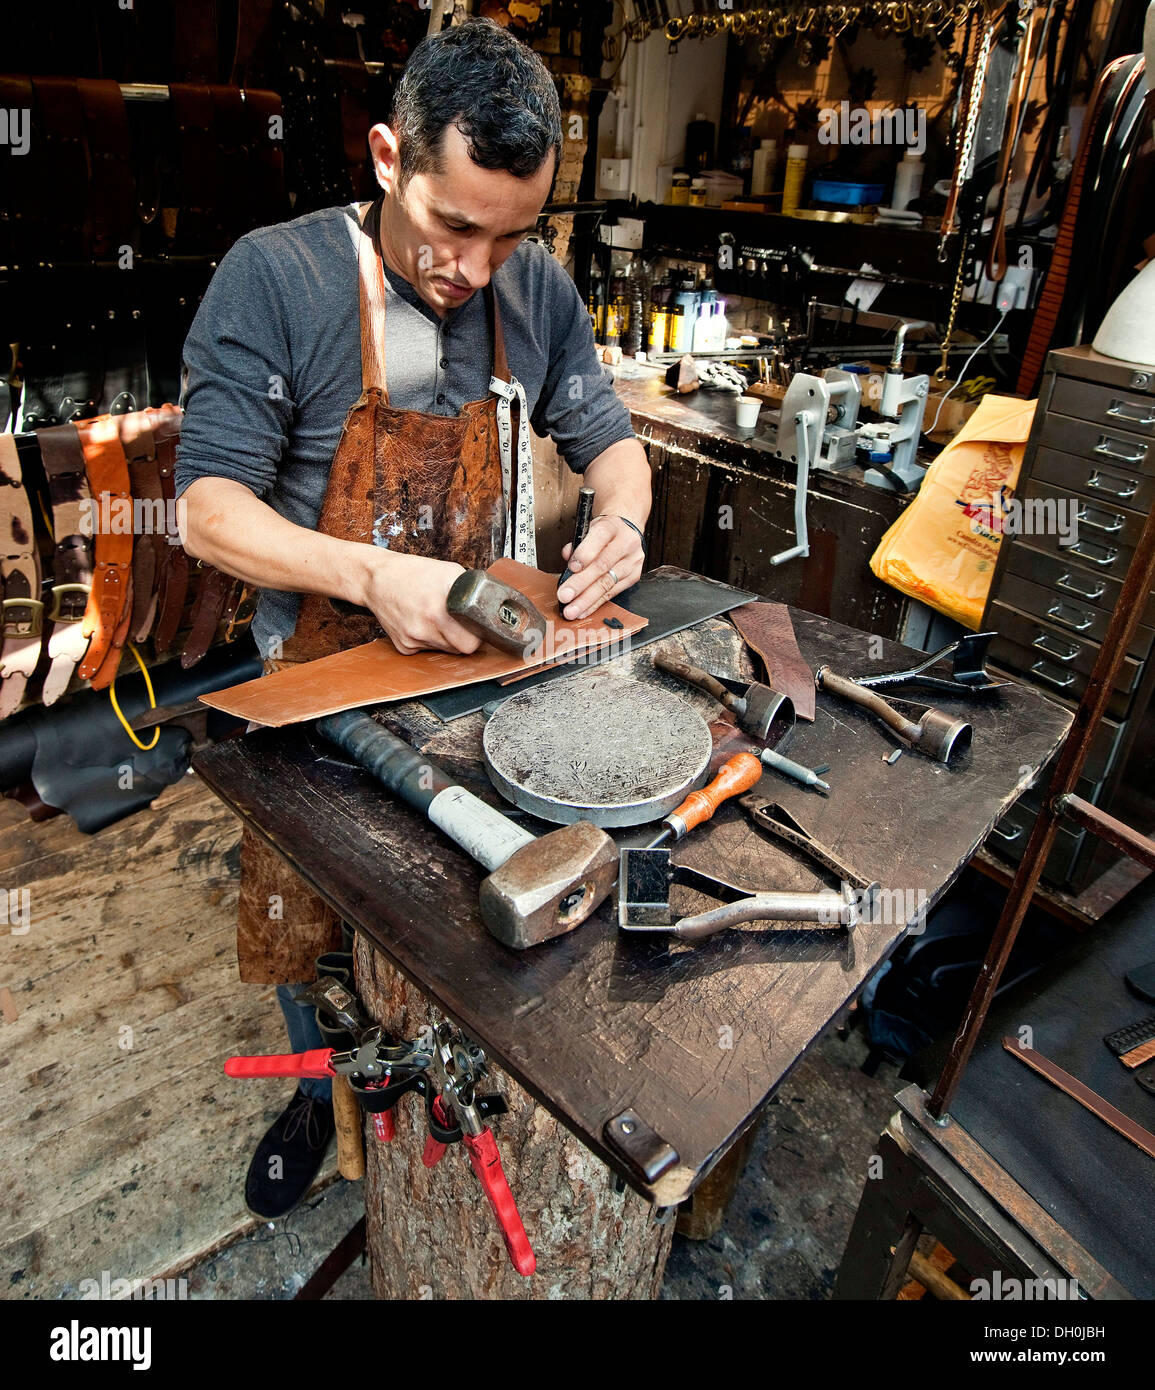 leather worker,Man crafting leather, hand made, leather goods. - Stock Image